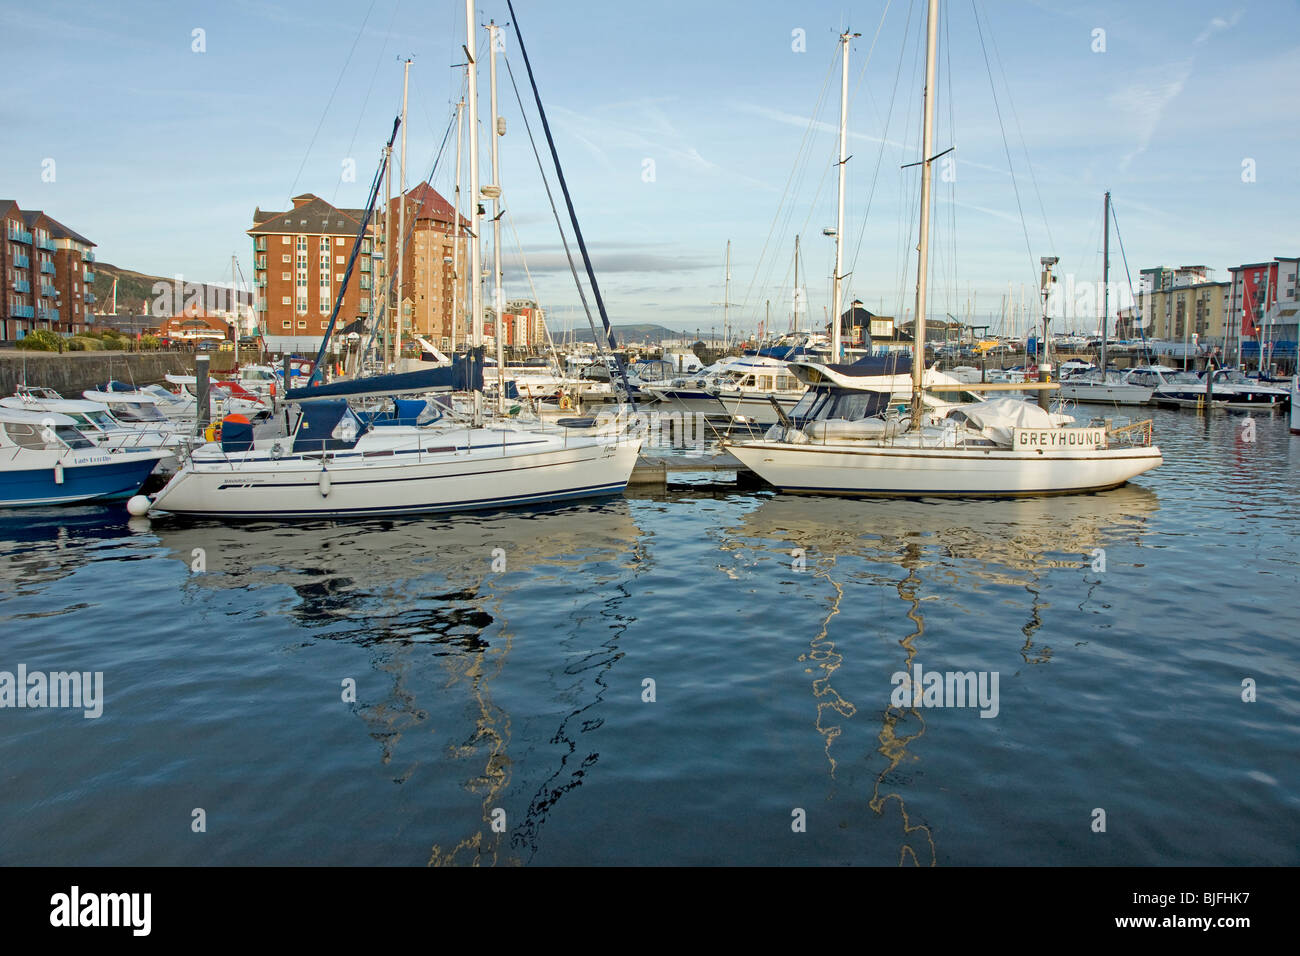 Swansea Marina in Swansea in South Wales - Stock Image